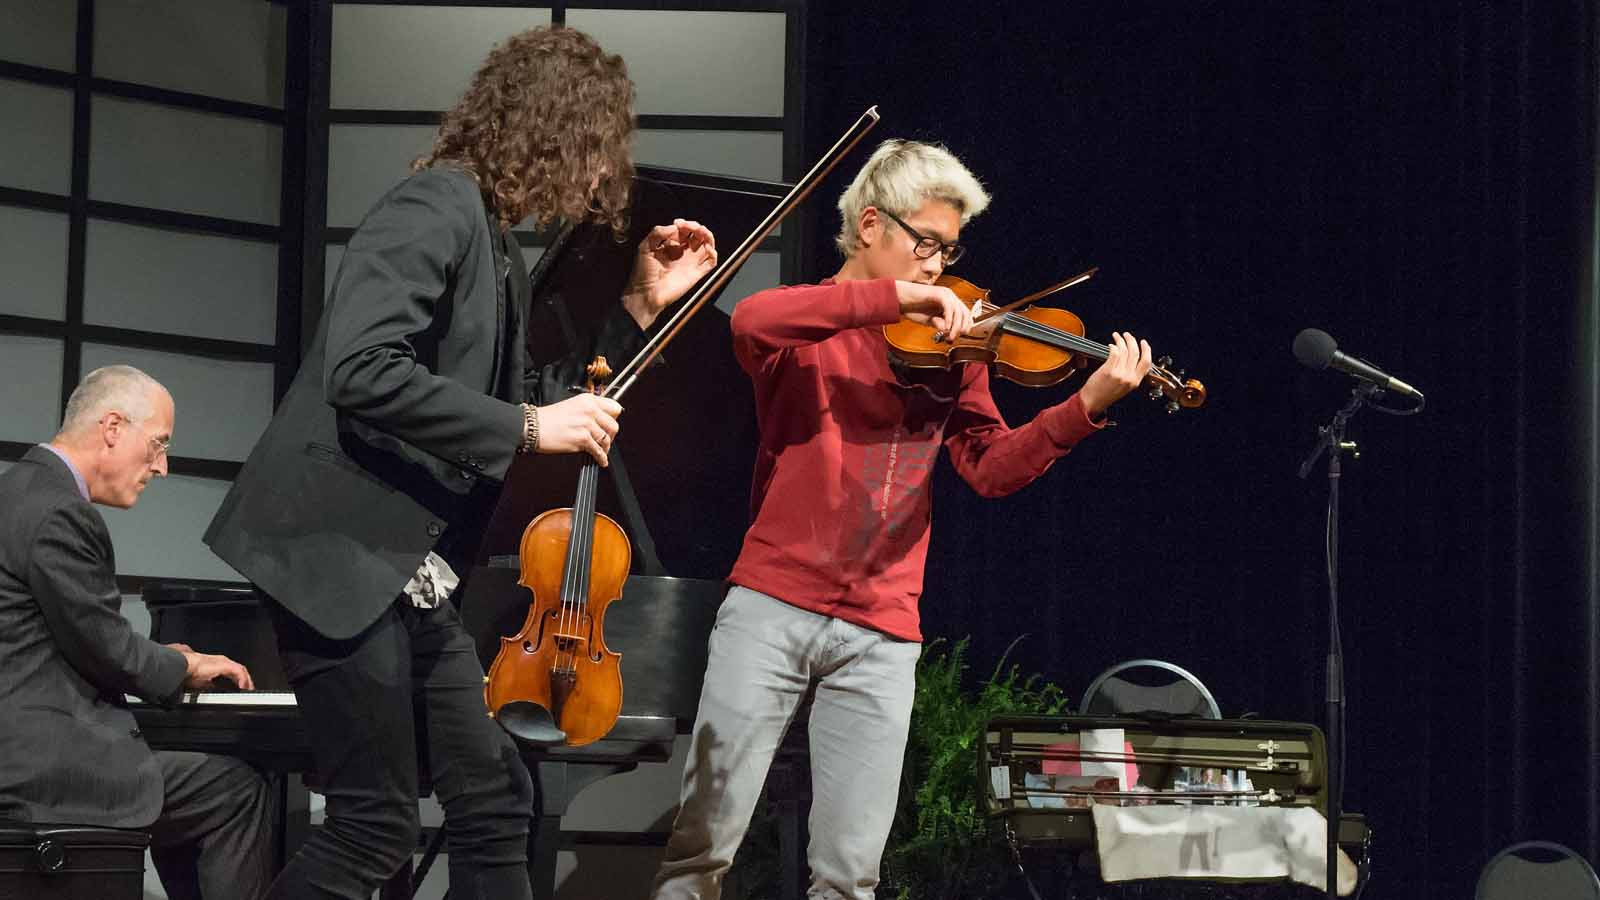 Tim Fain was also part of the masterclass, working with student Hee Sung Kim.